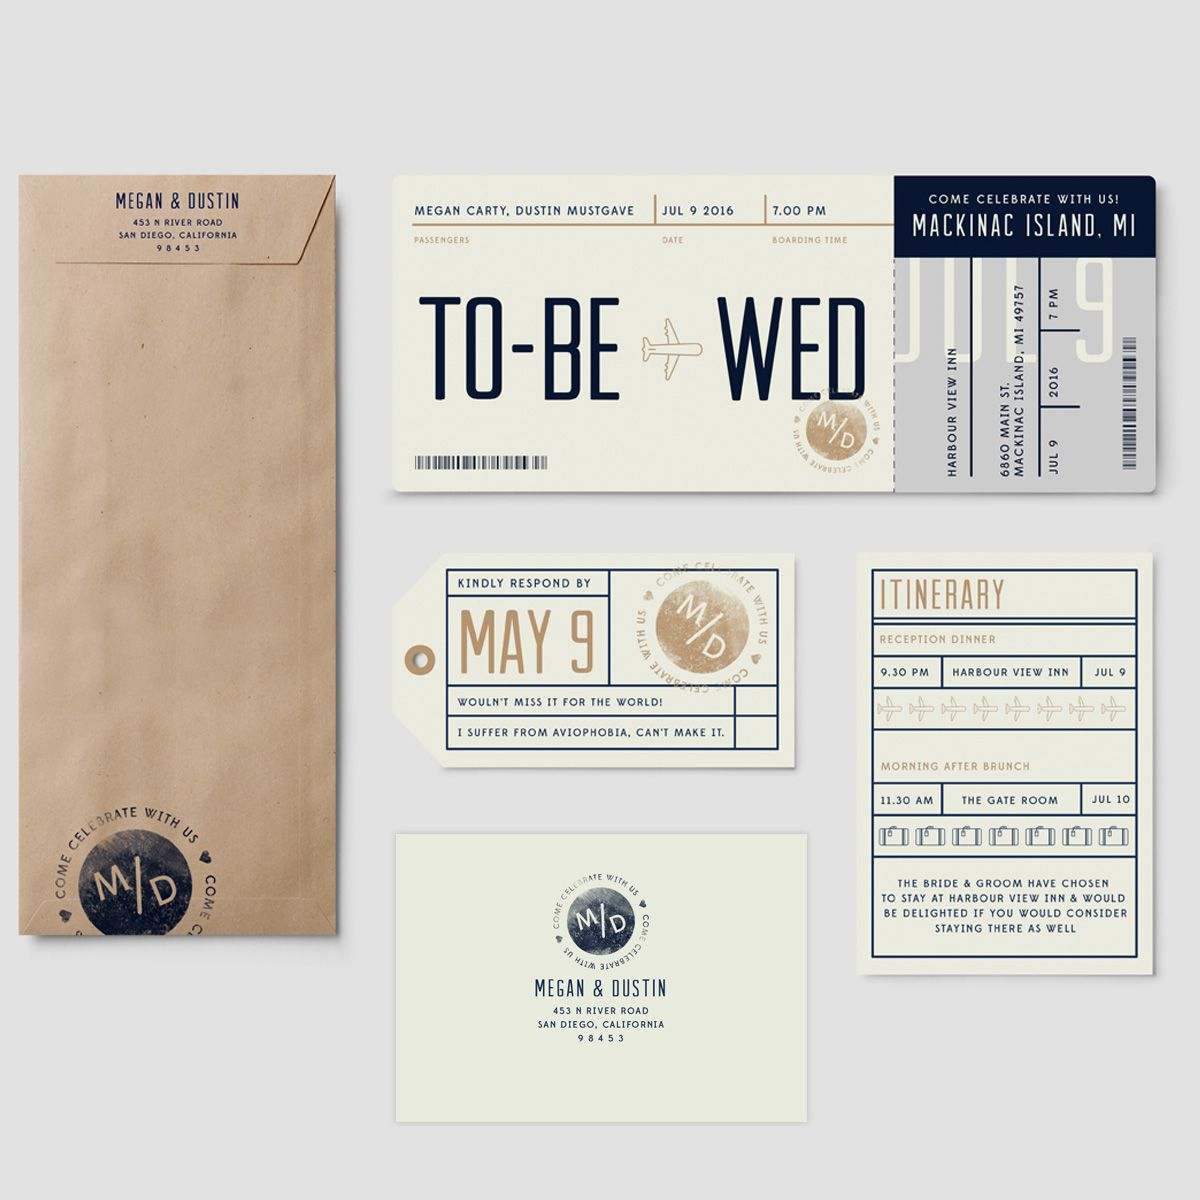 Boarding Pass to Wed from Pixie - Custom Wedding Invitations and ...